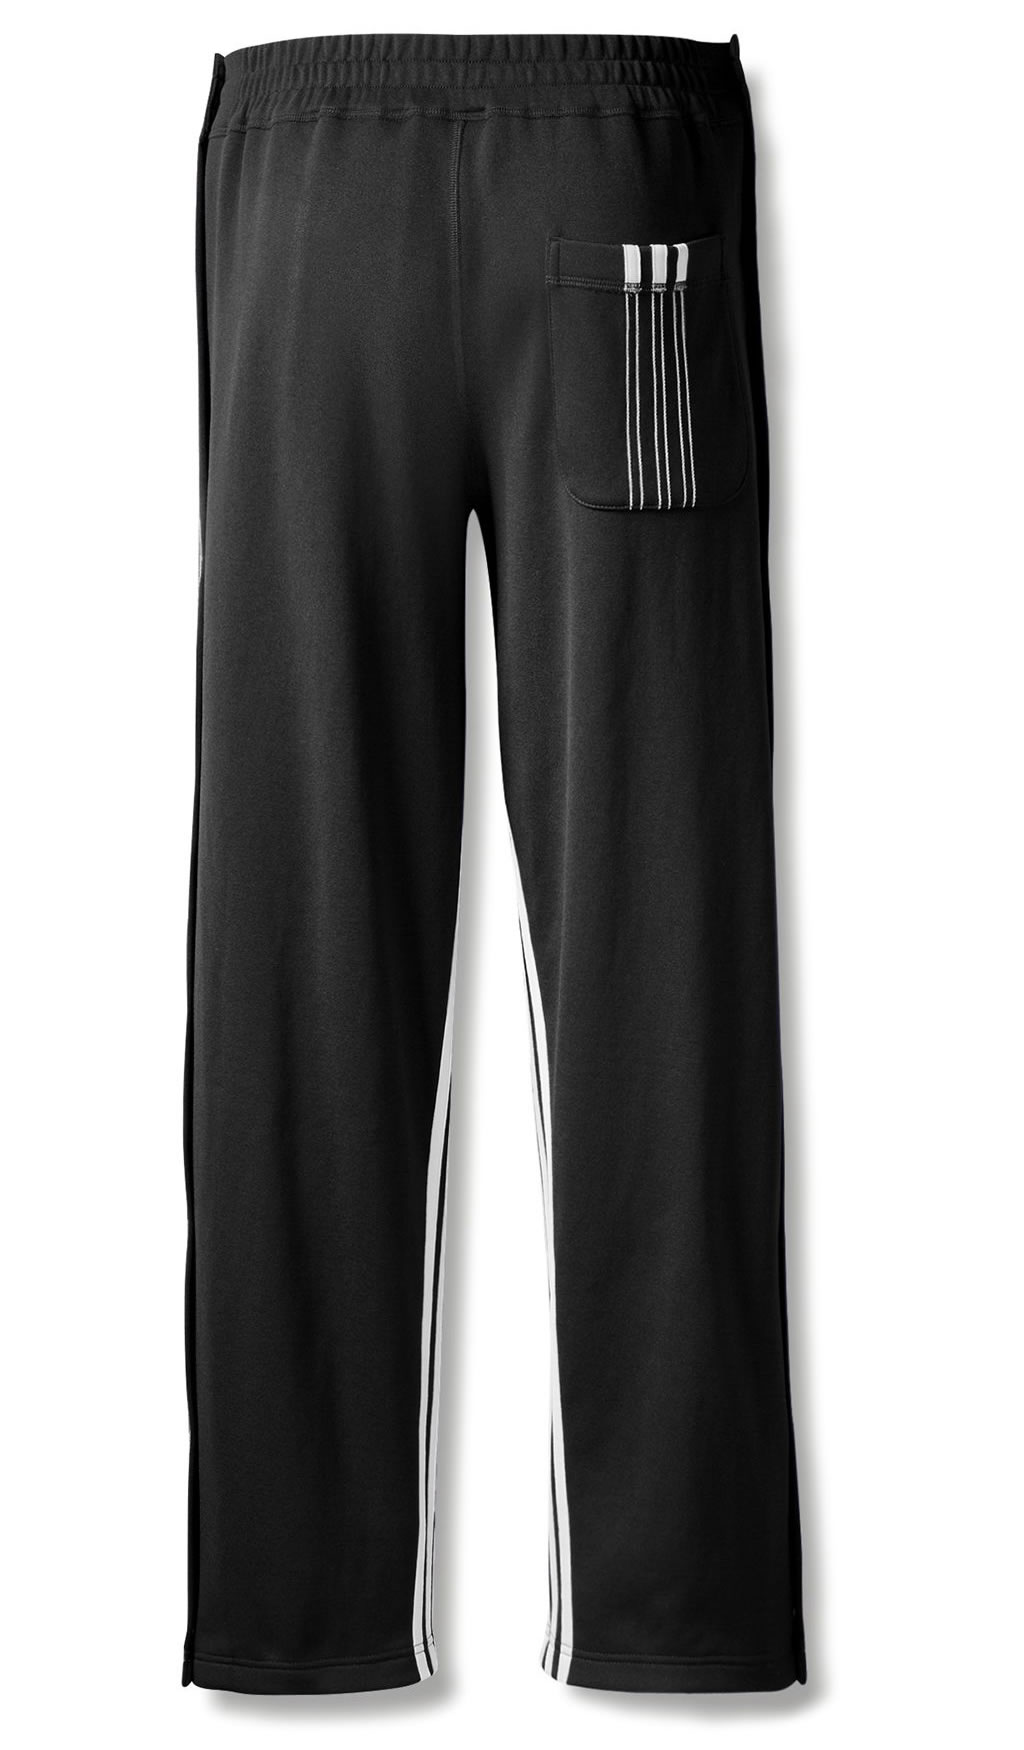 Black AW Track Pants by Adidas Originals , Back